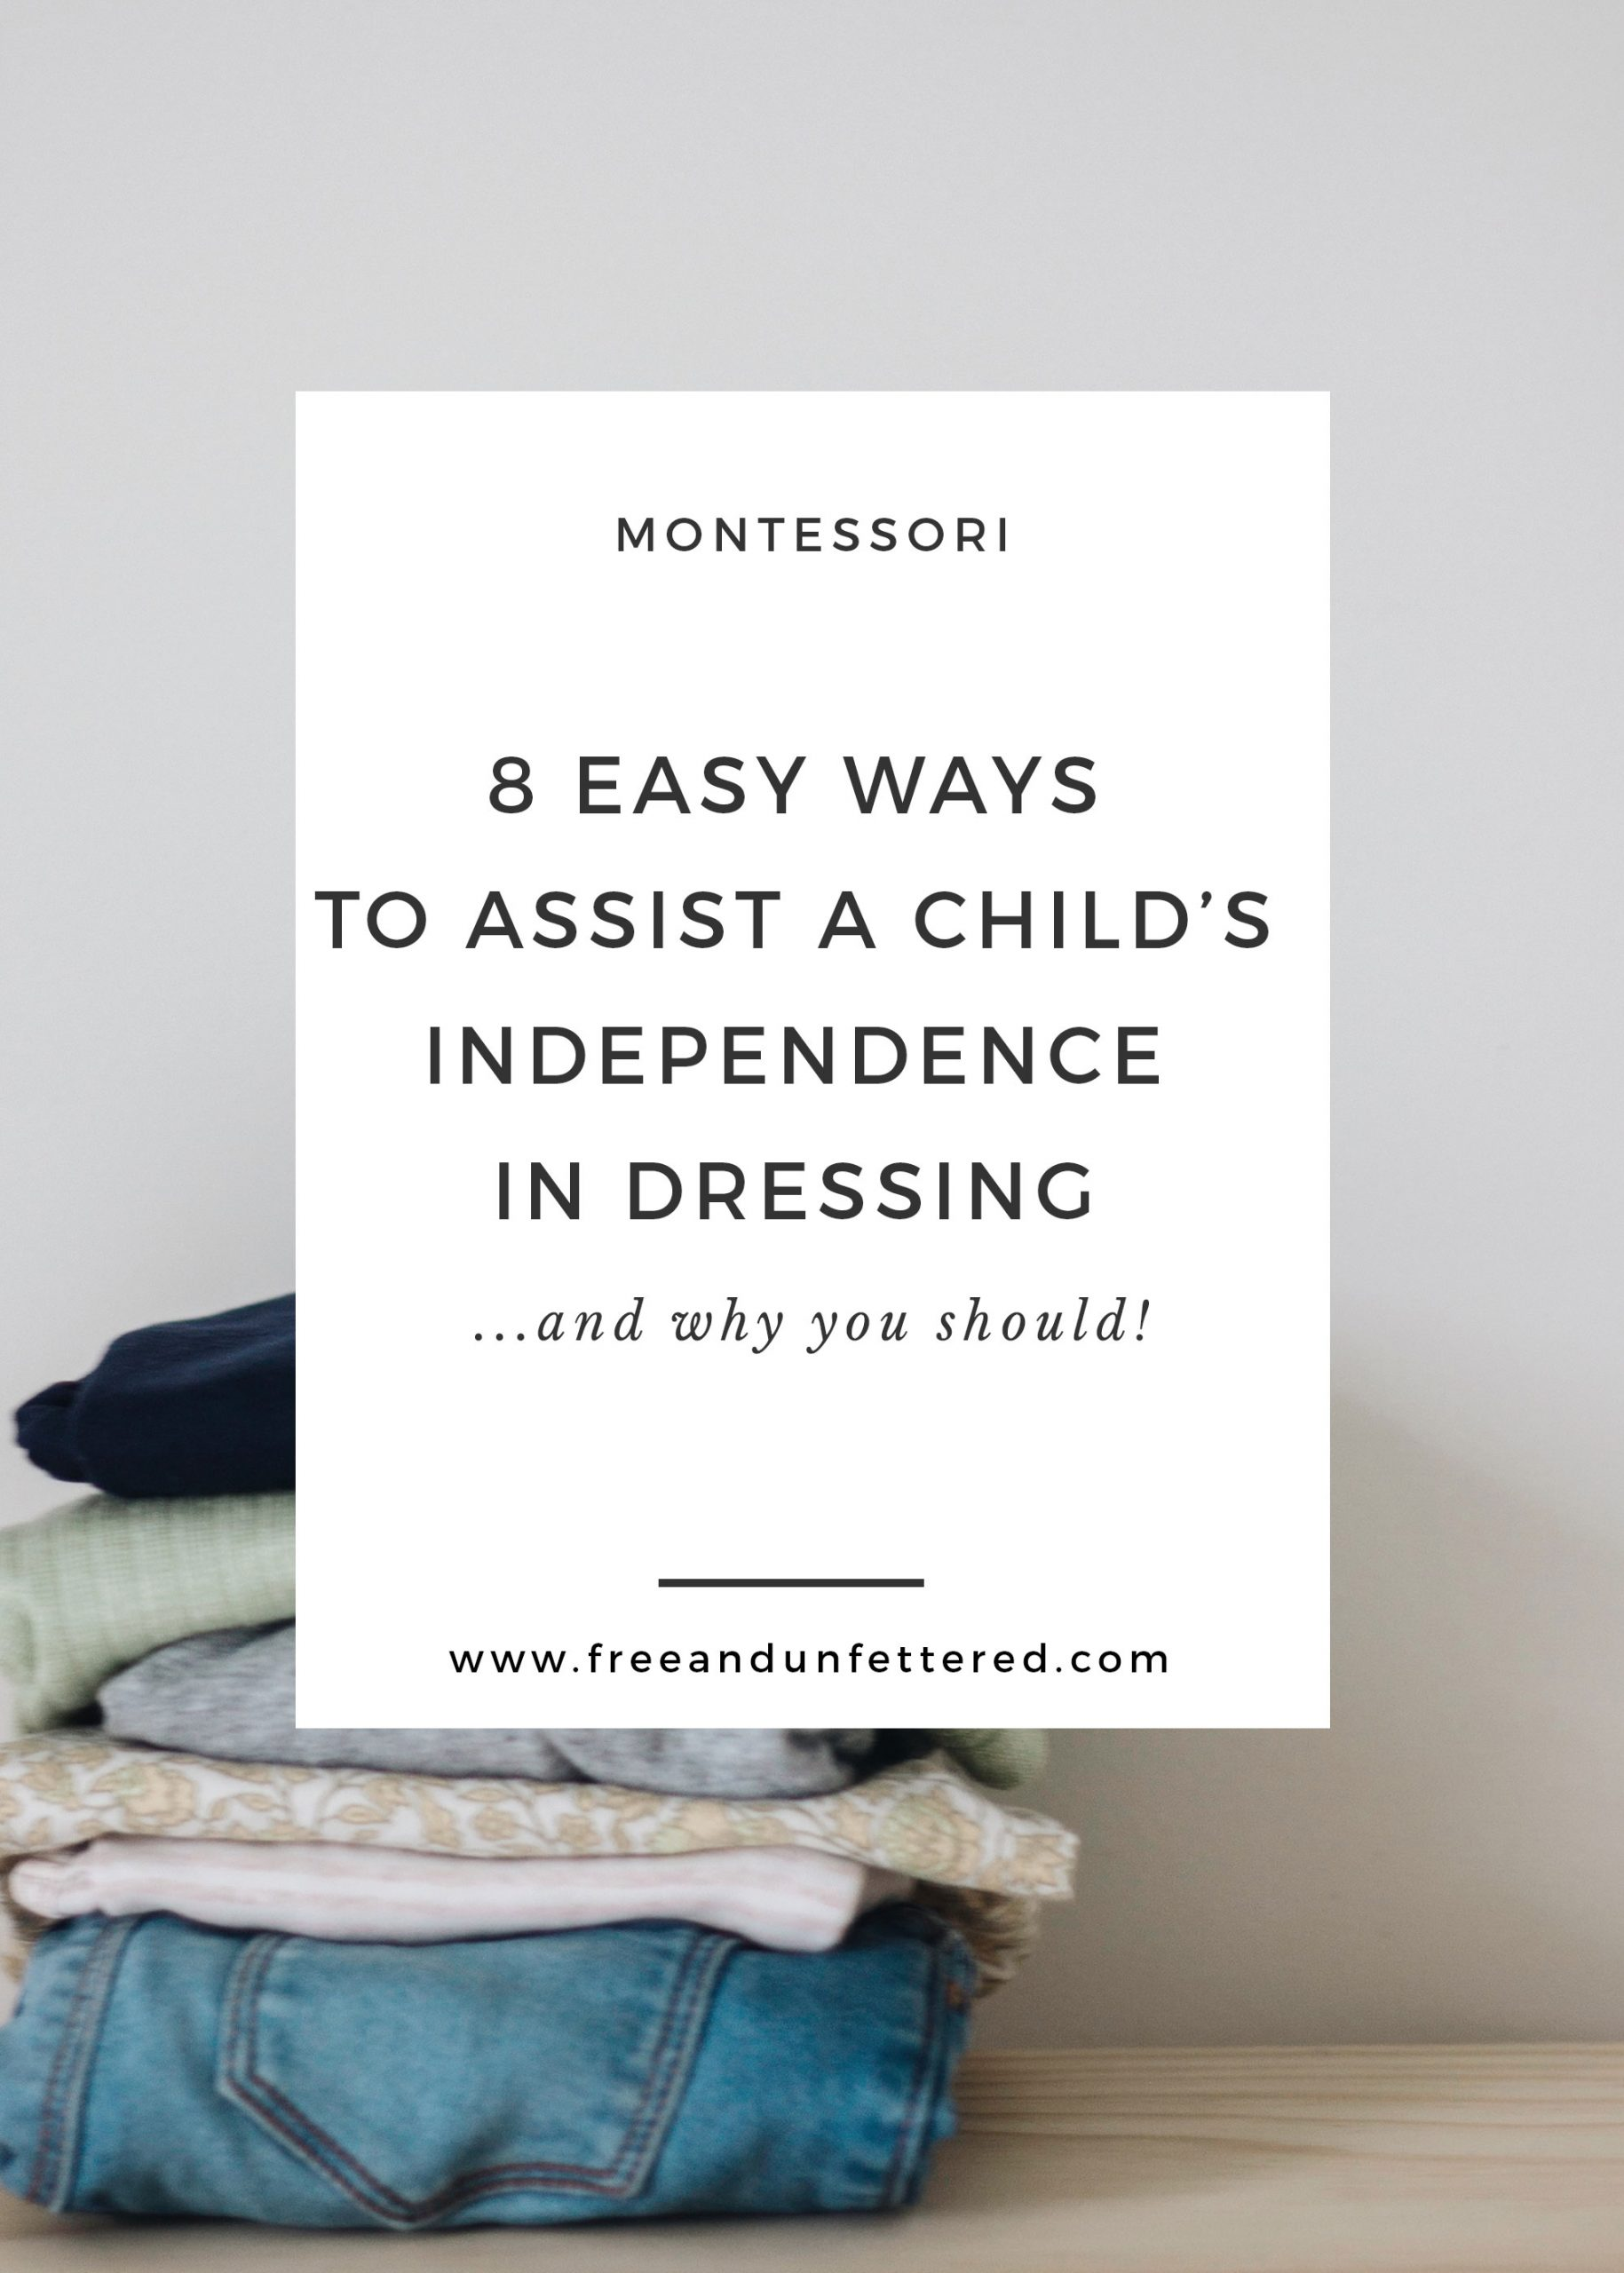 Montessori: 8 Easy Ways to Assist a Child's Independence in Dressing + Why You Should